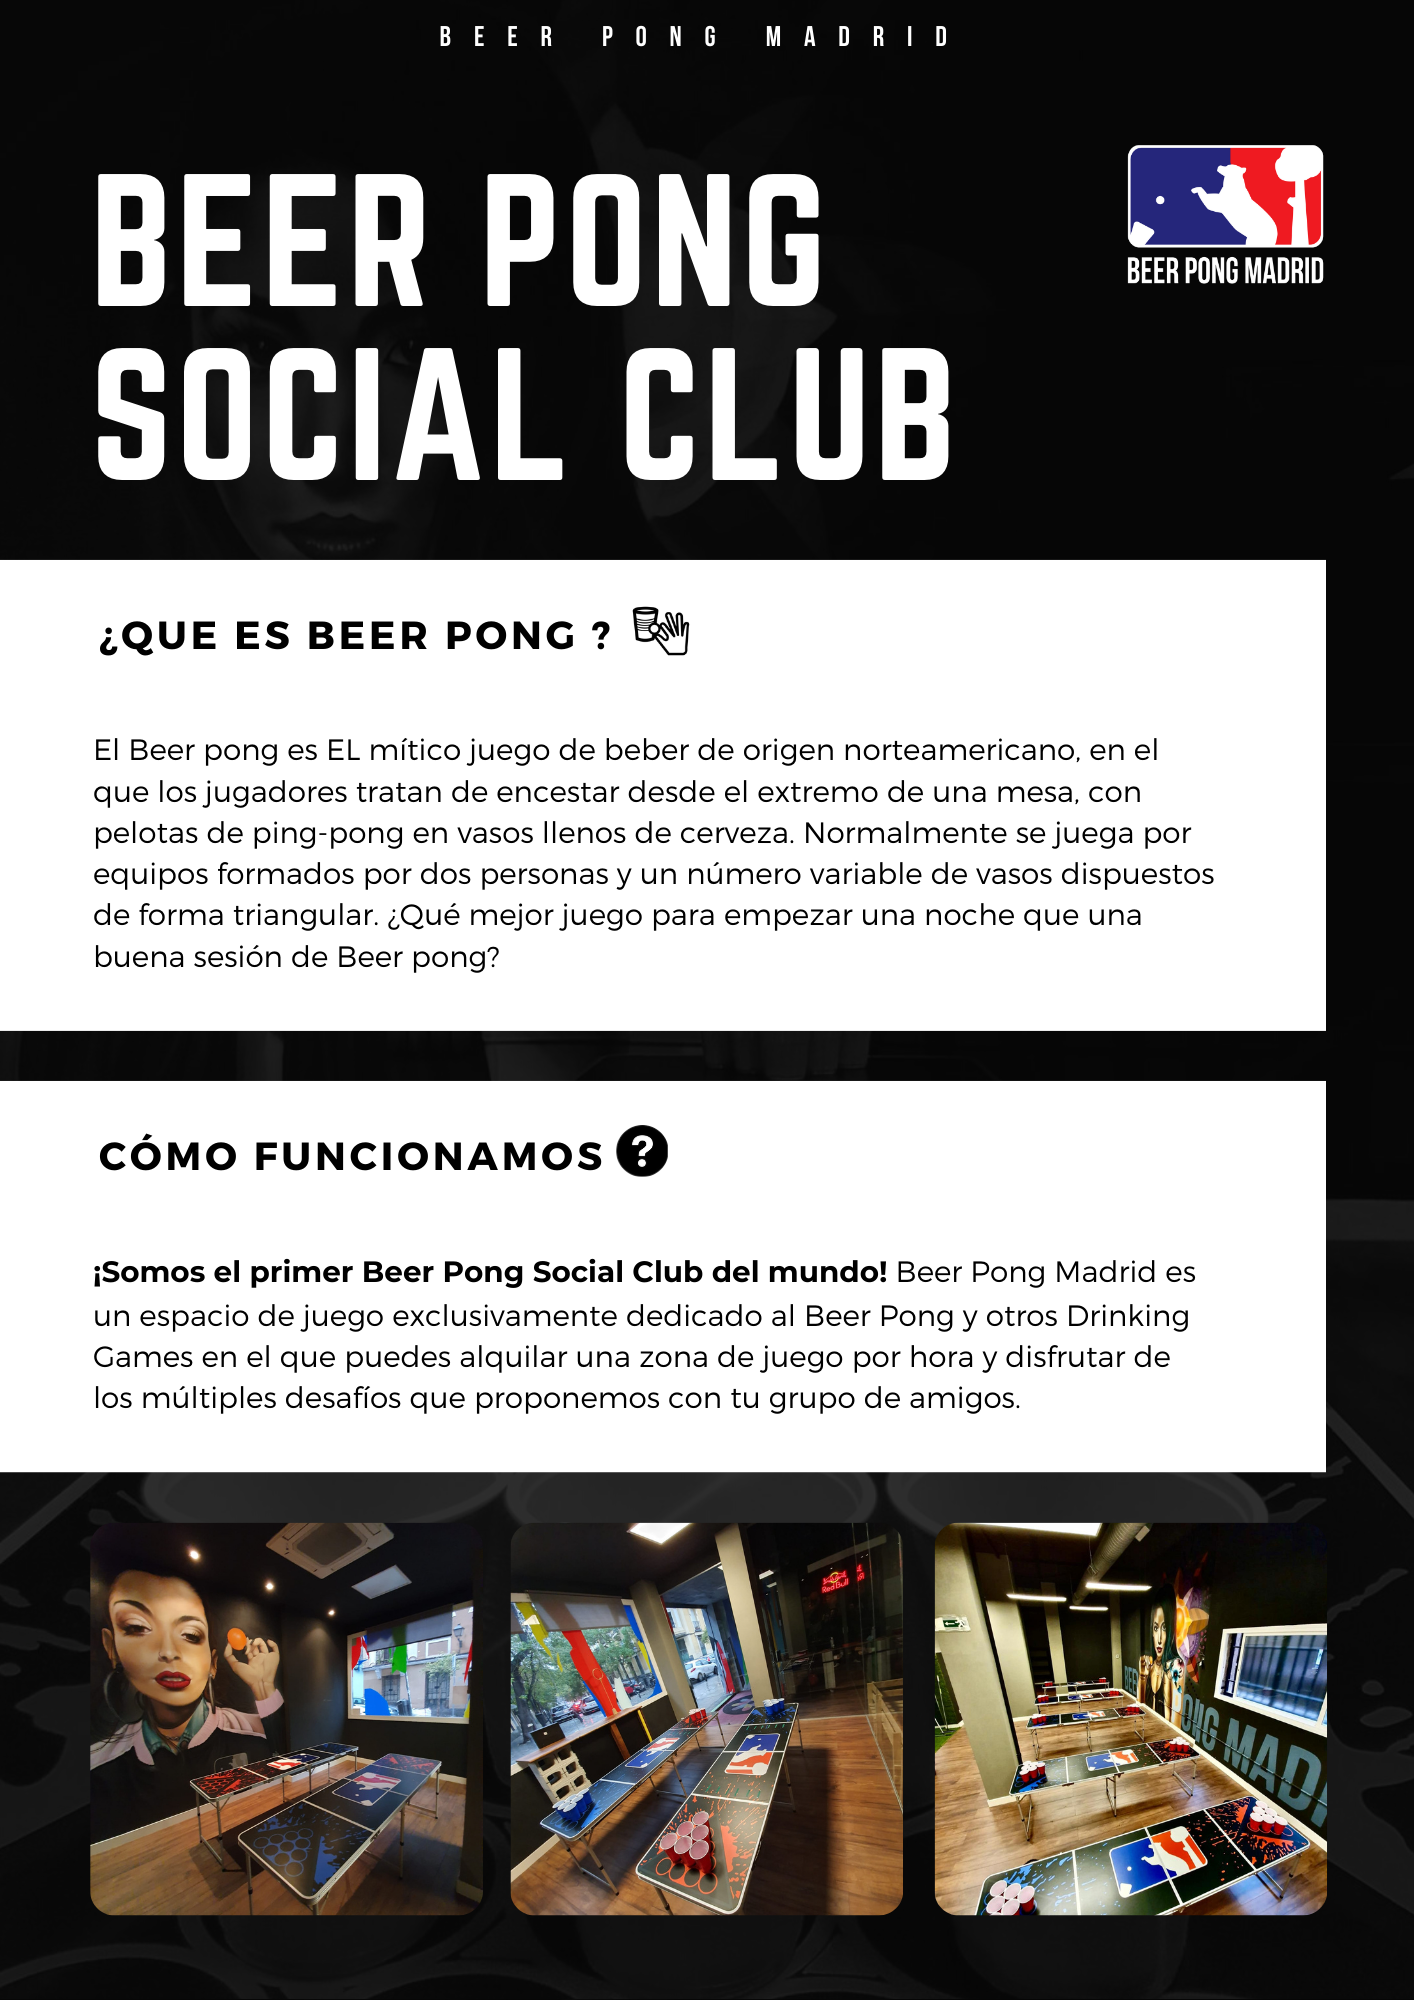 Beer Pong Social Club